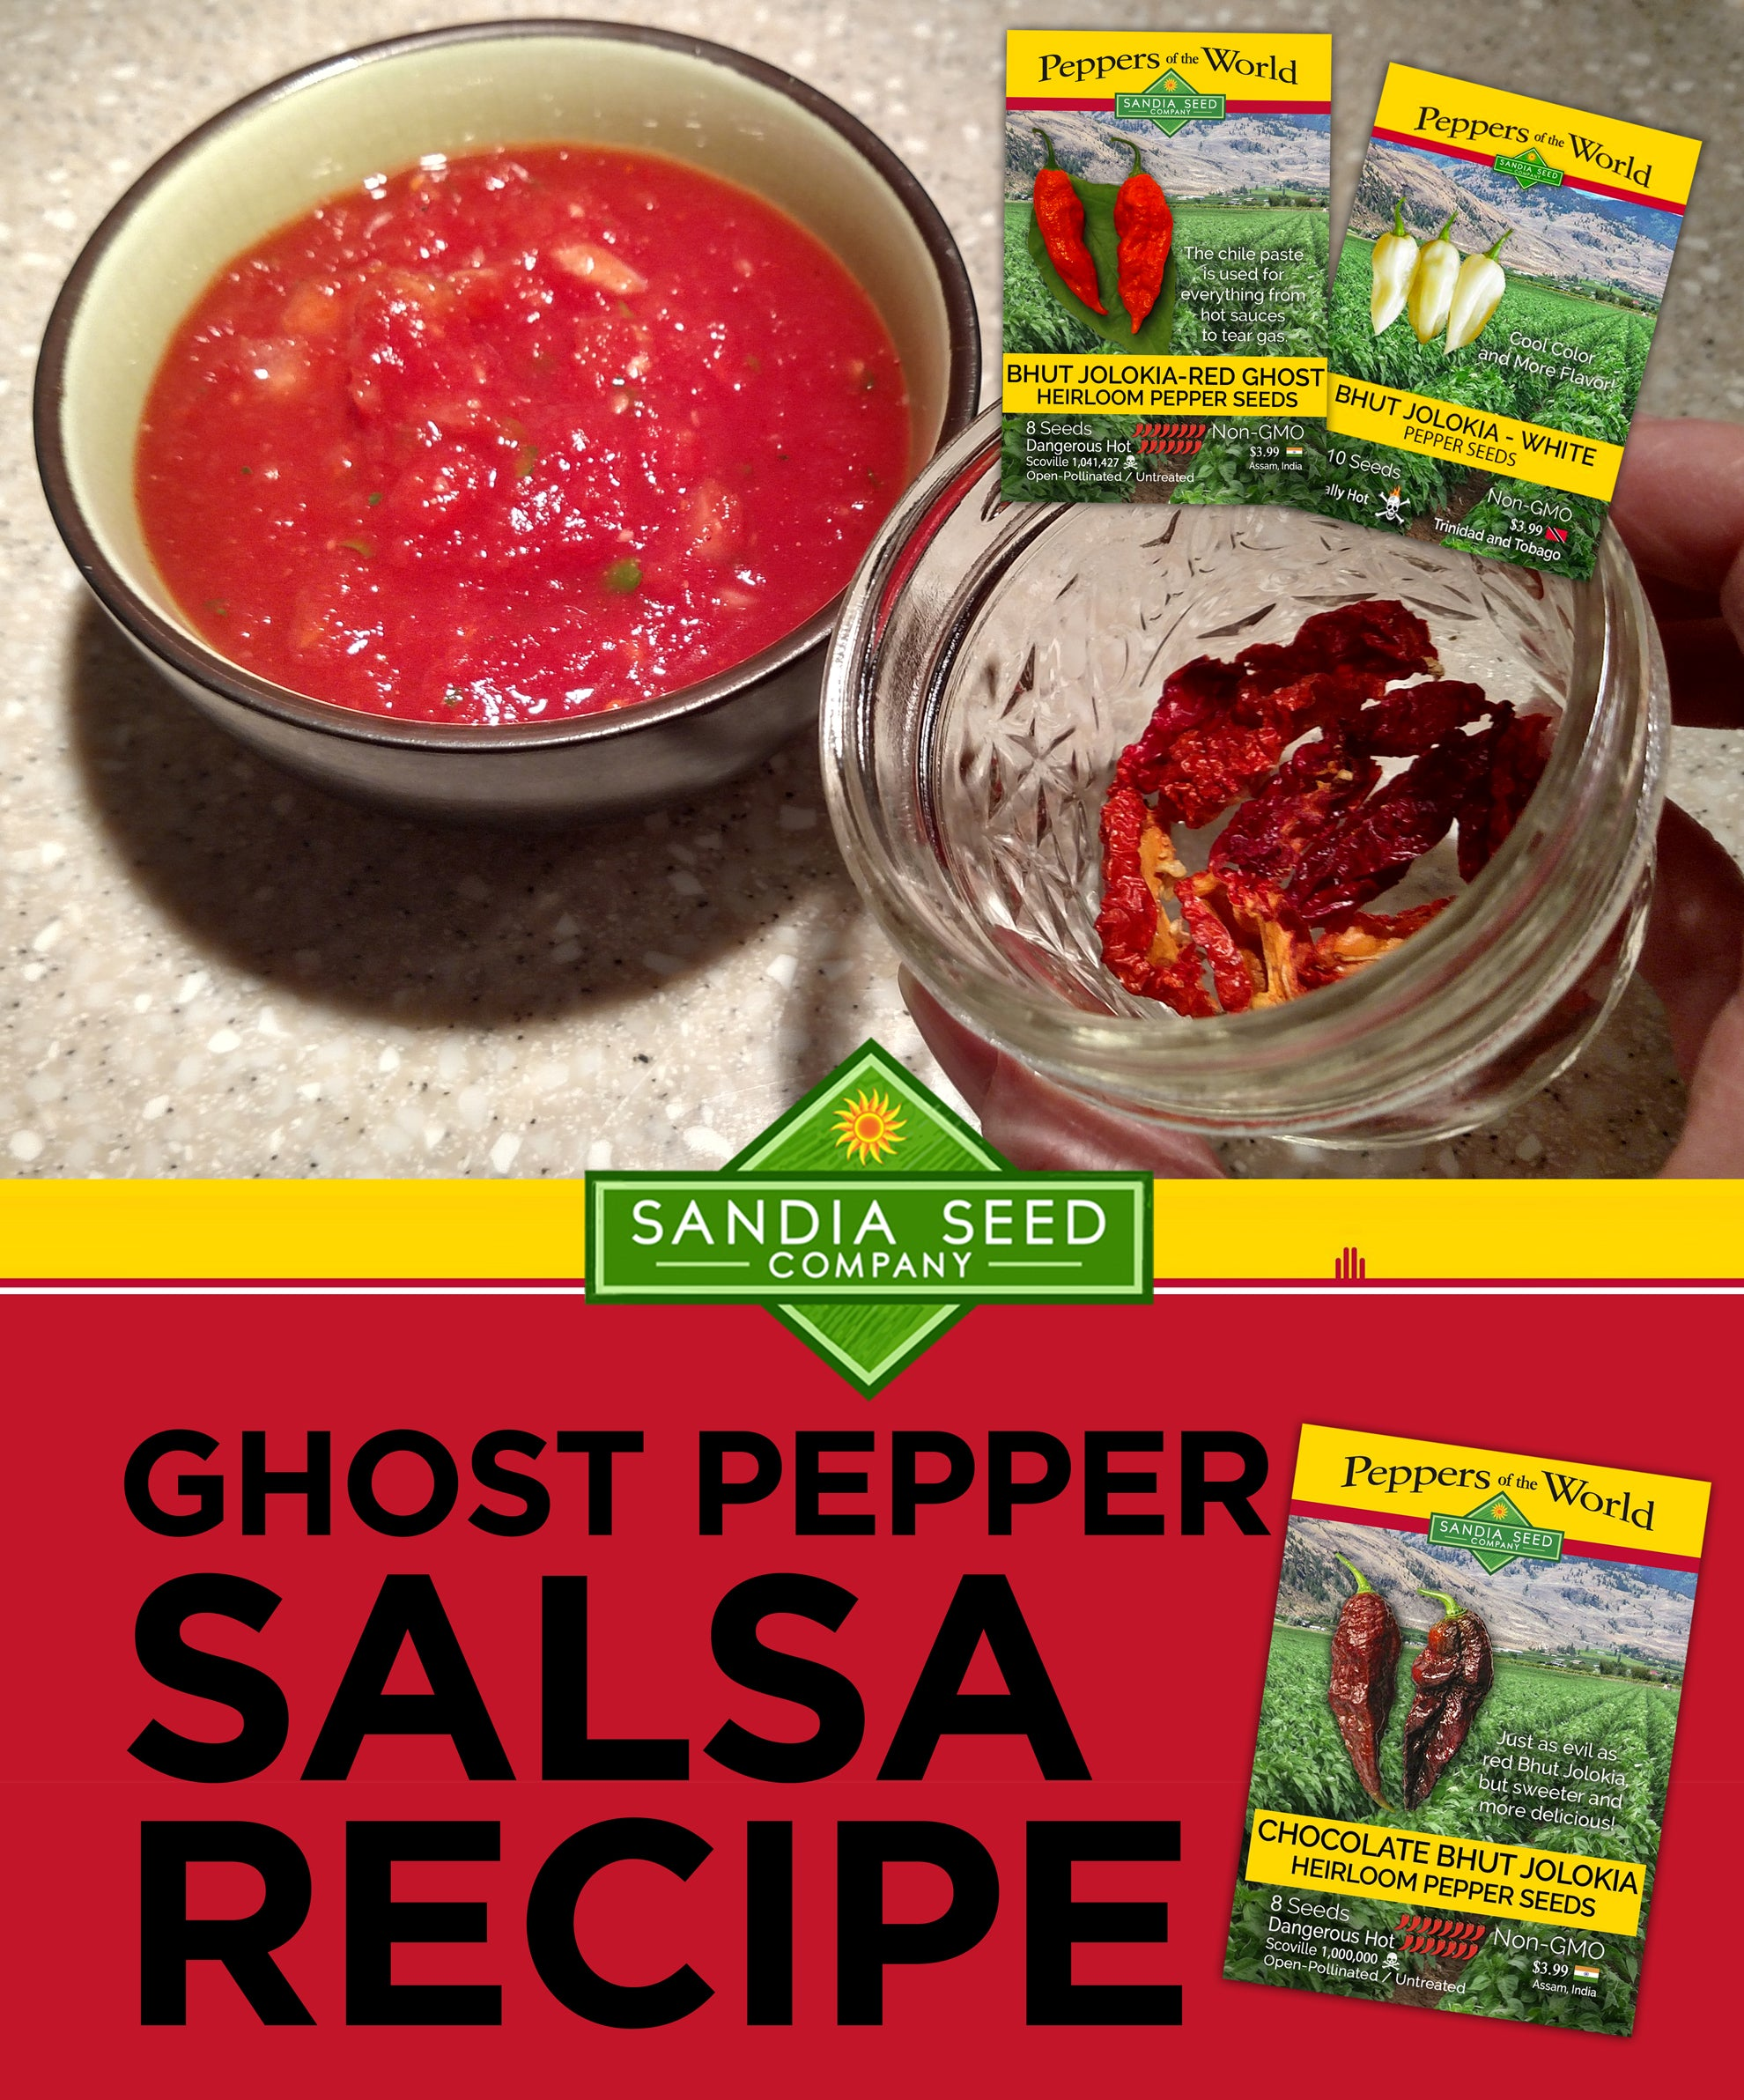 Ghost Pepper Salsa Recipe